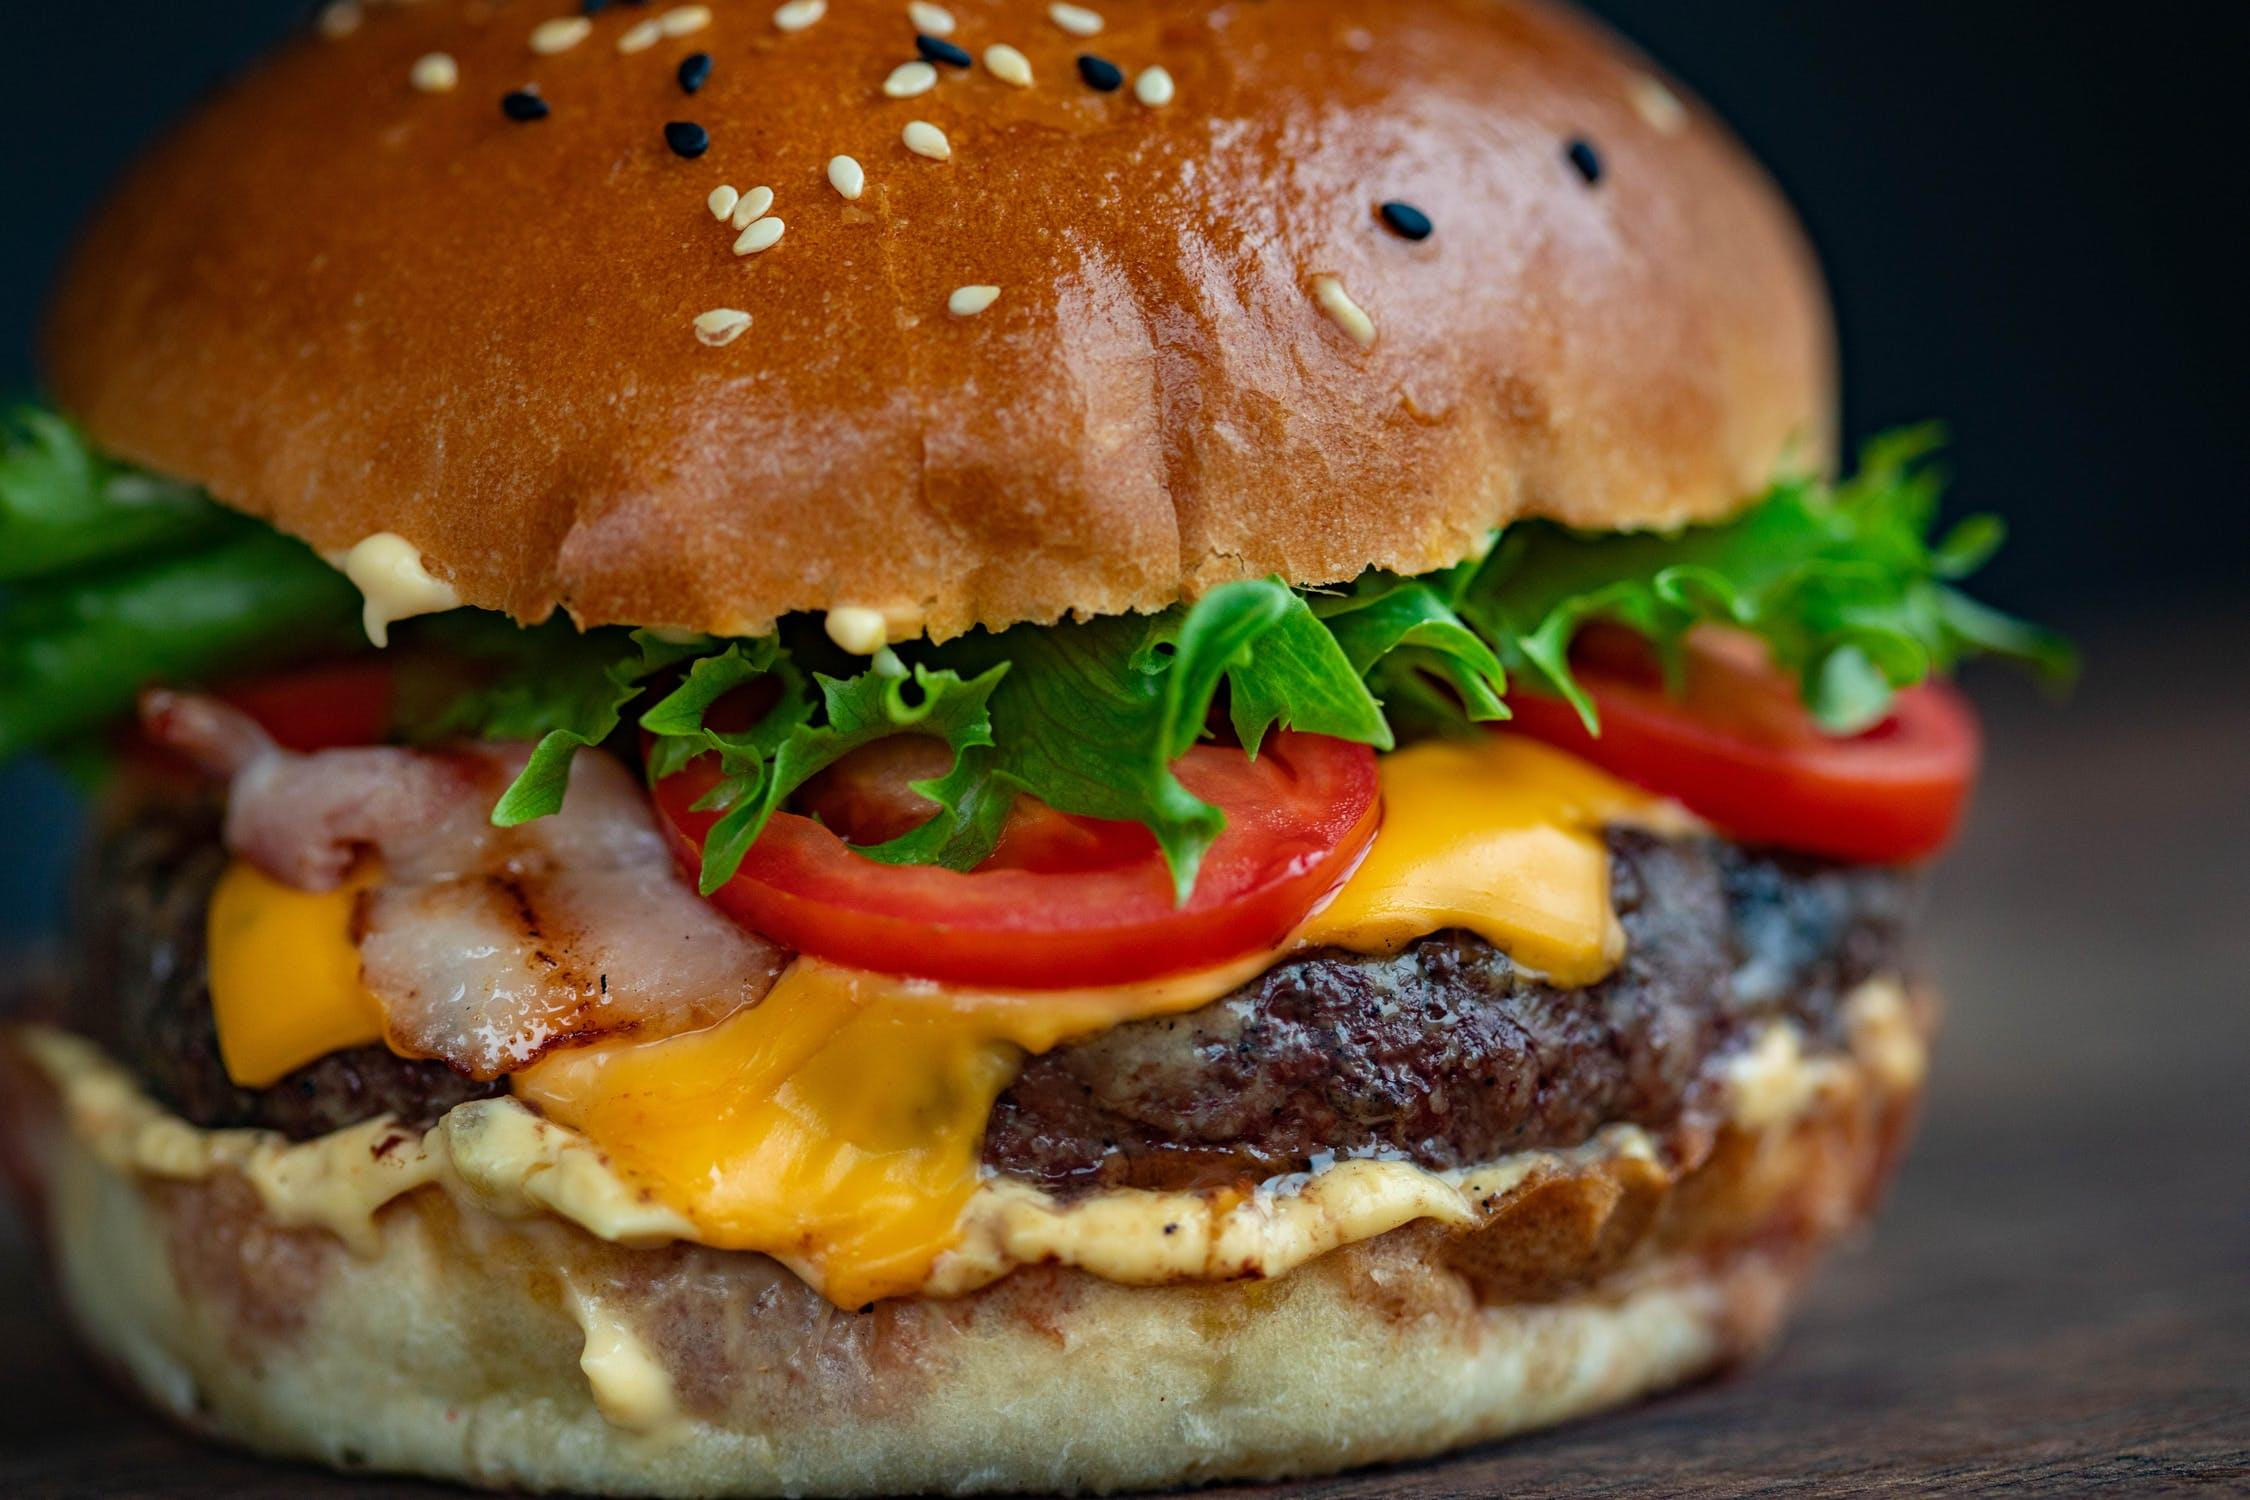 A company is looking to hire a Professional Cheeseburger Taster